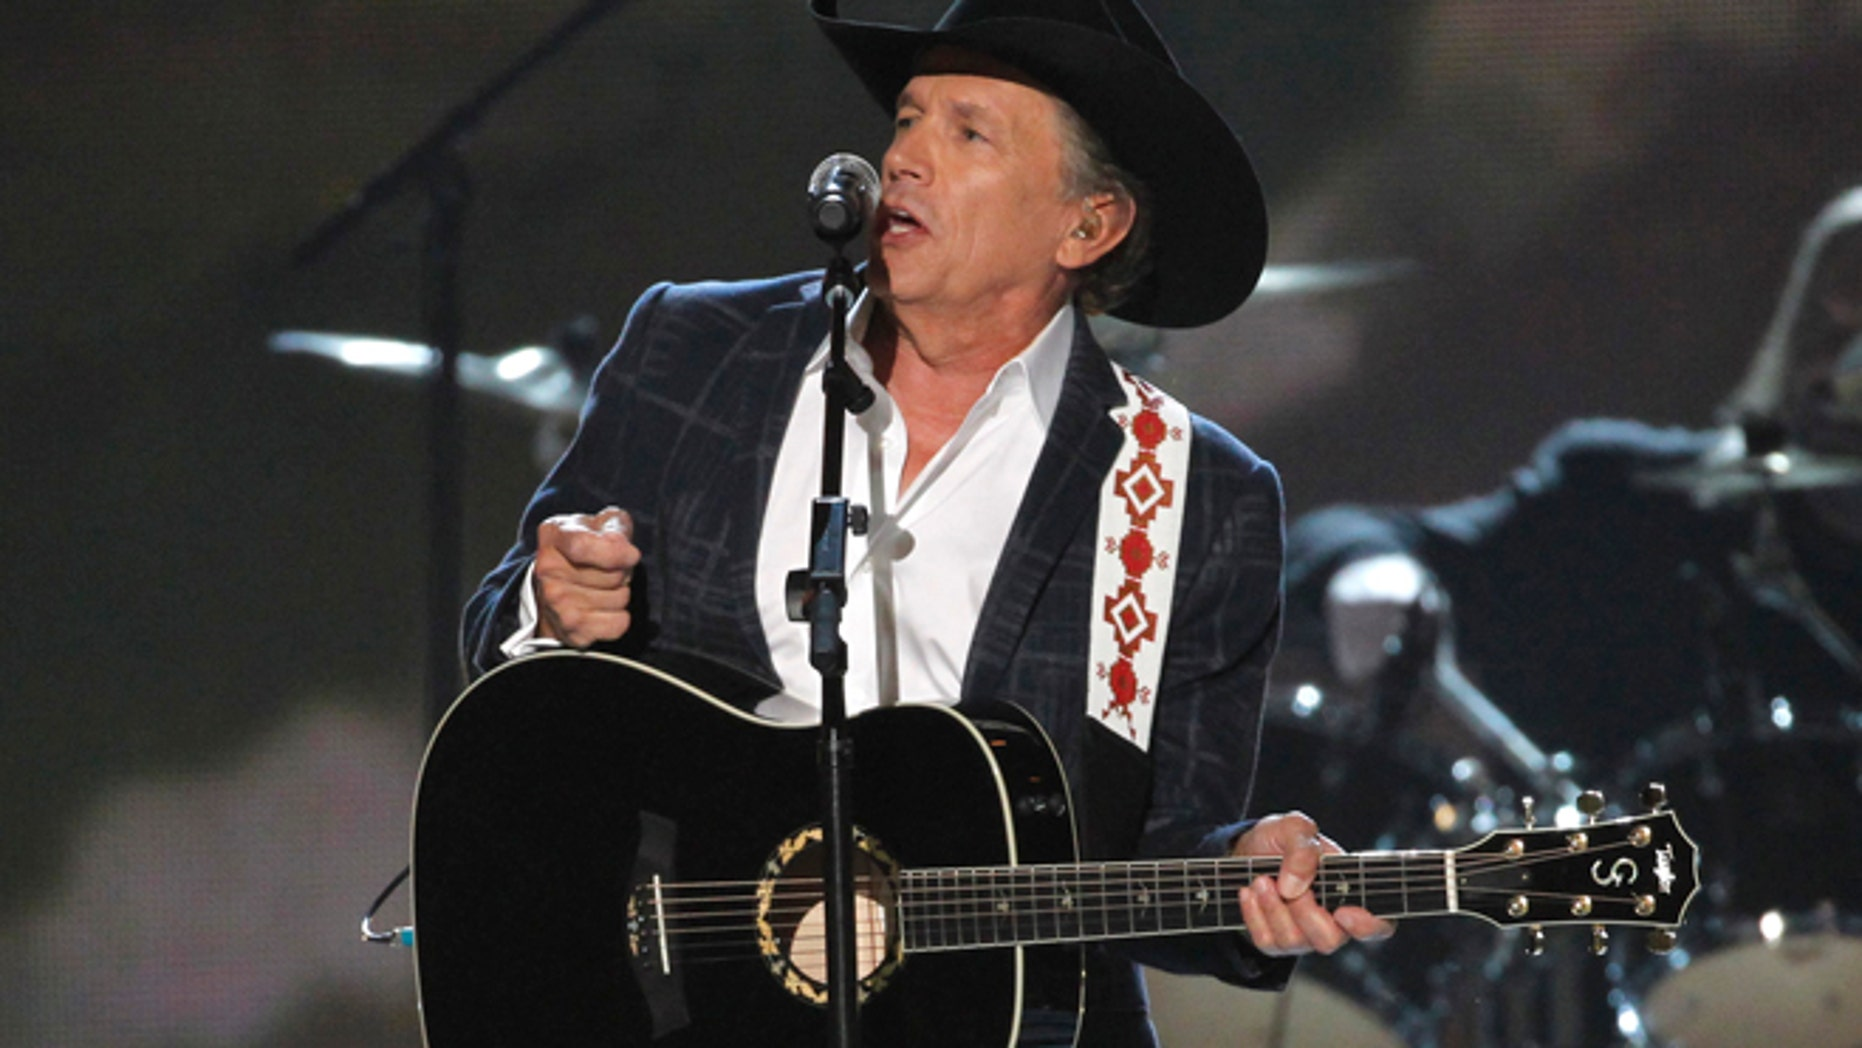 """April 6: George Strait performs """"I Got a Car"""" at the 49th Annual Academy of Country Music Awards in Las Vegas, Nevada."""